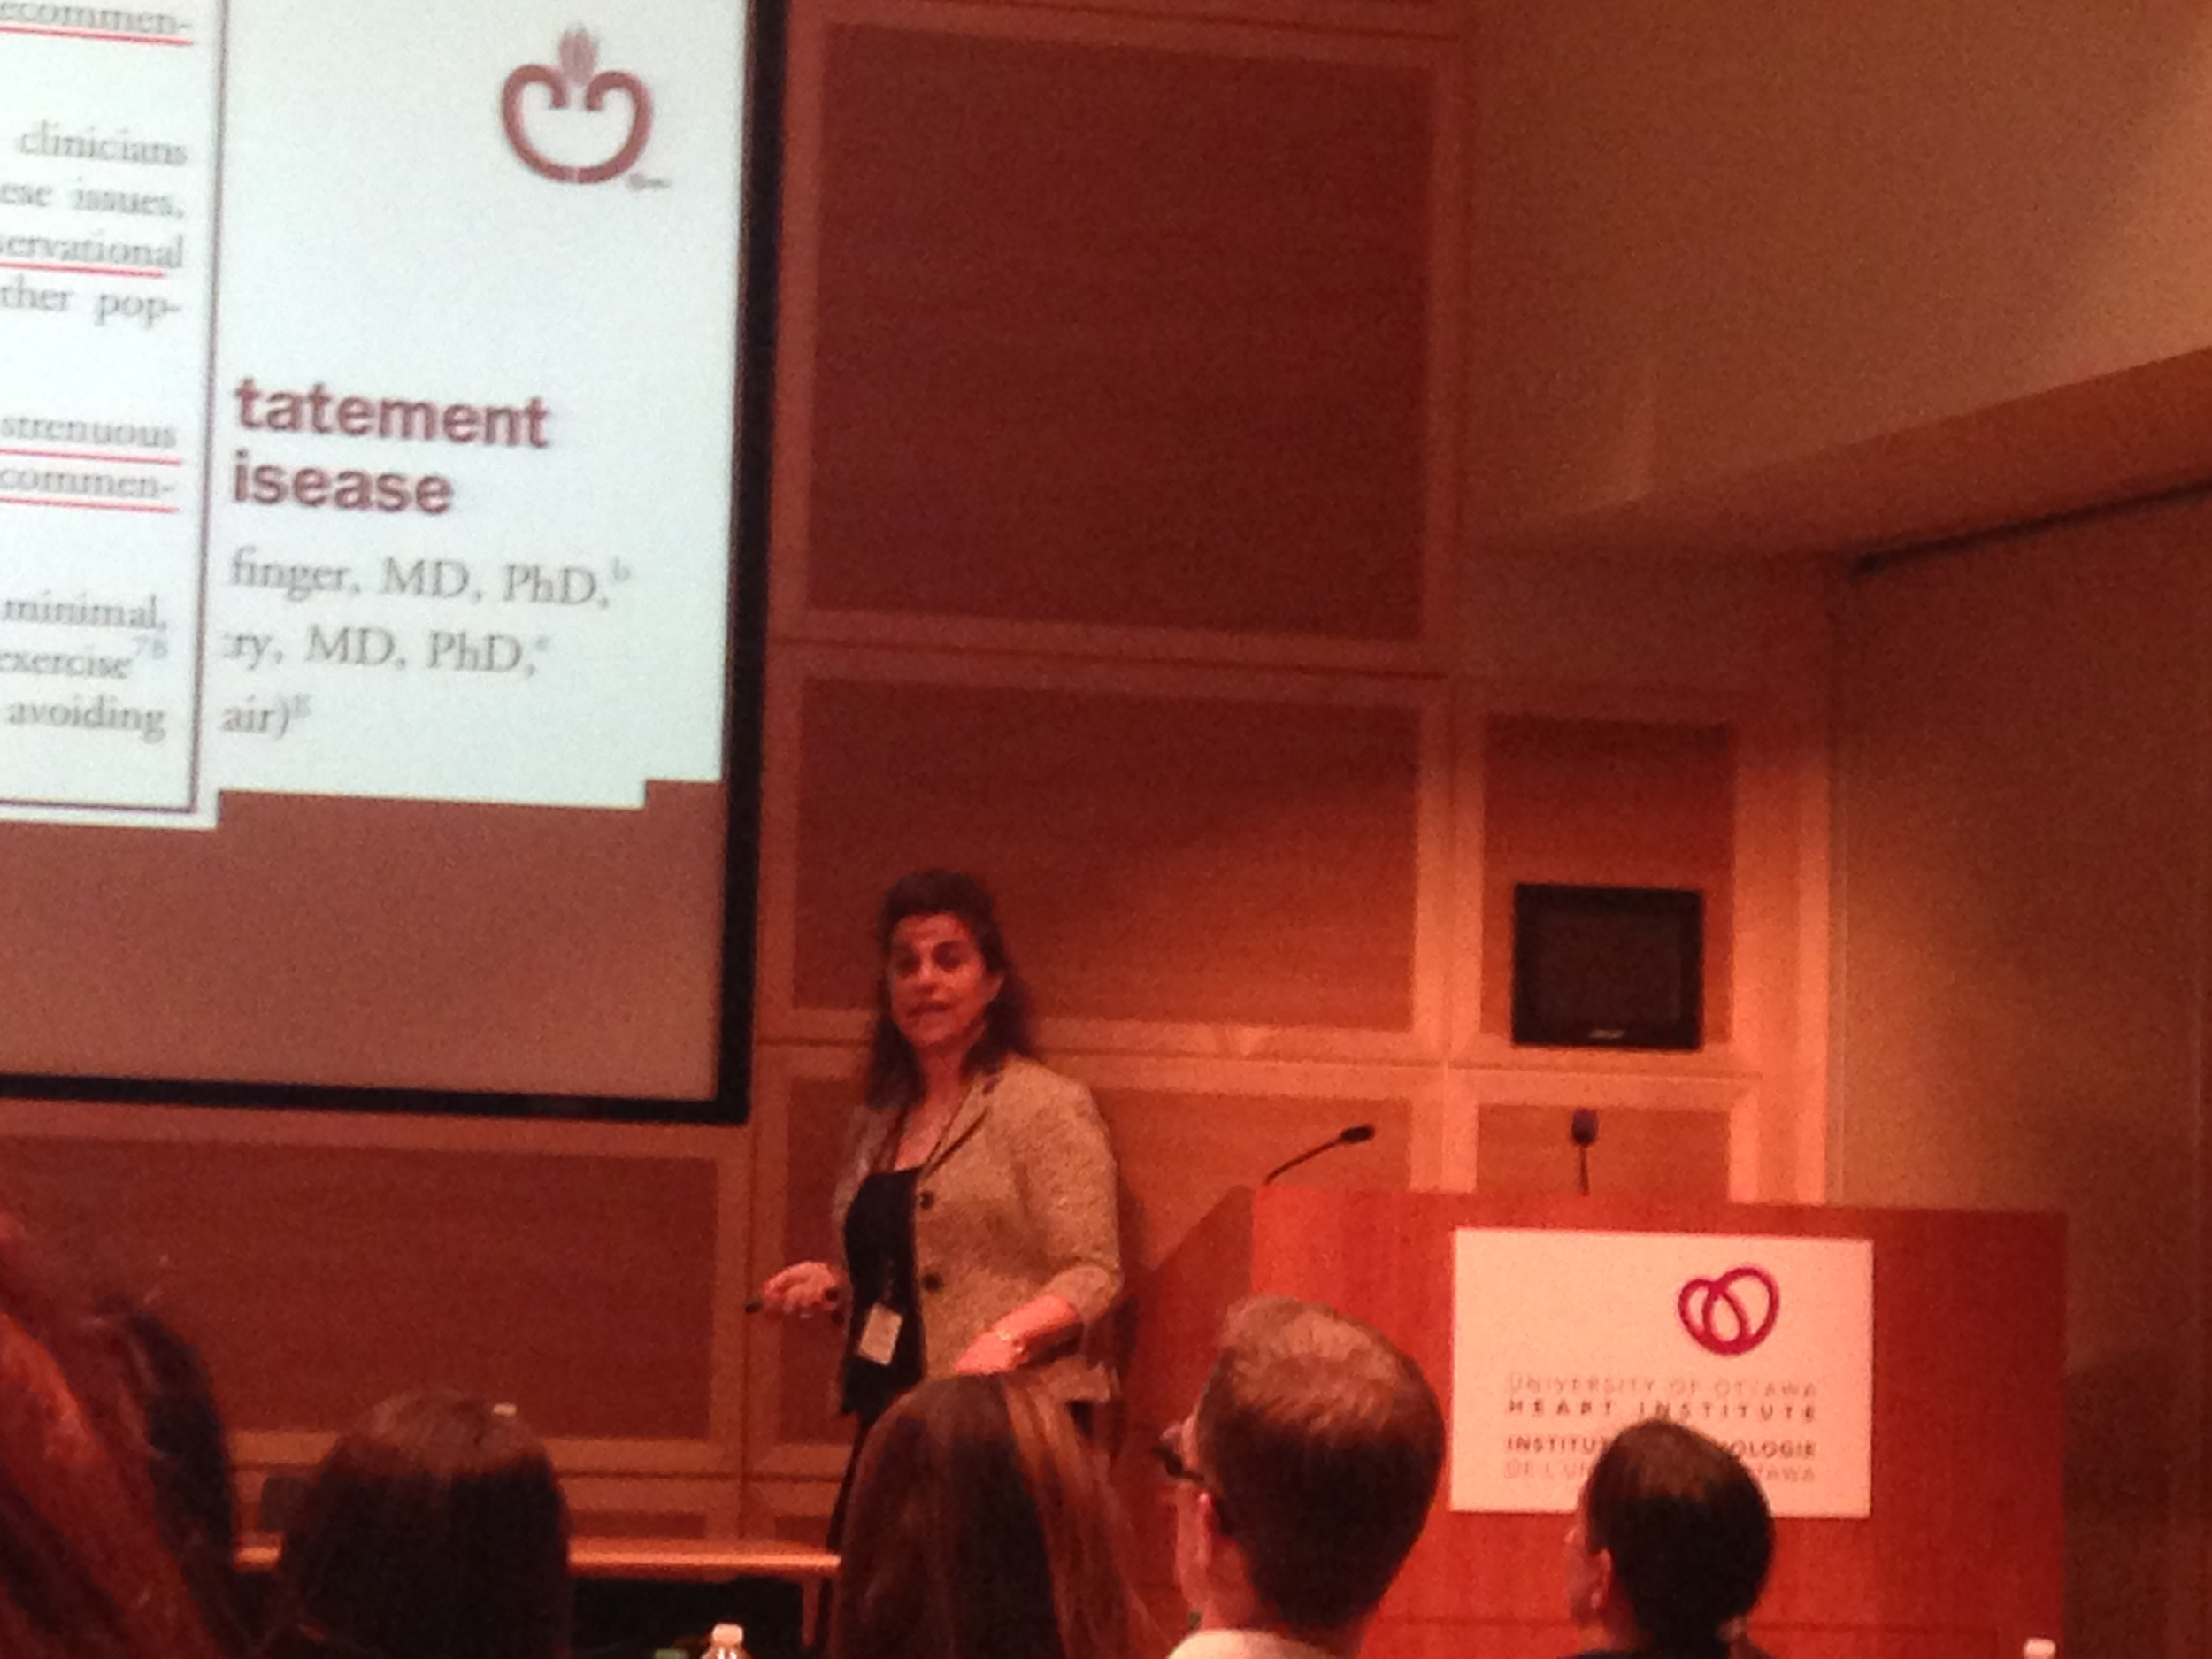 Mitra Esfandiarei, PhD, Midwestern University, AZ - Exercise and Marfan Syndrome: Research Data